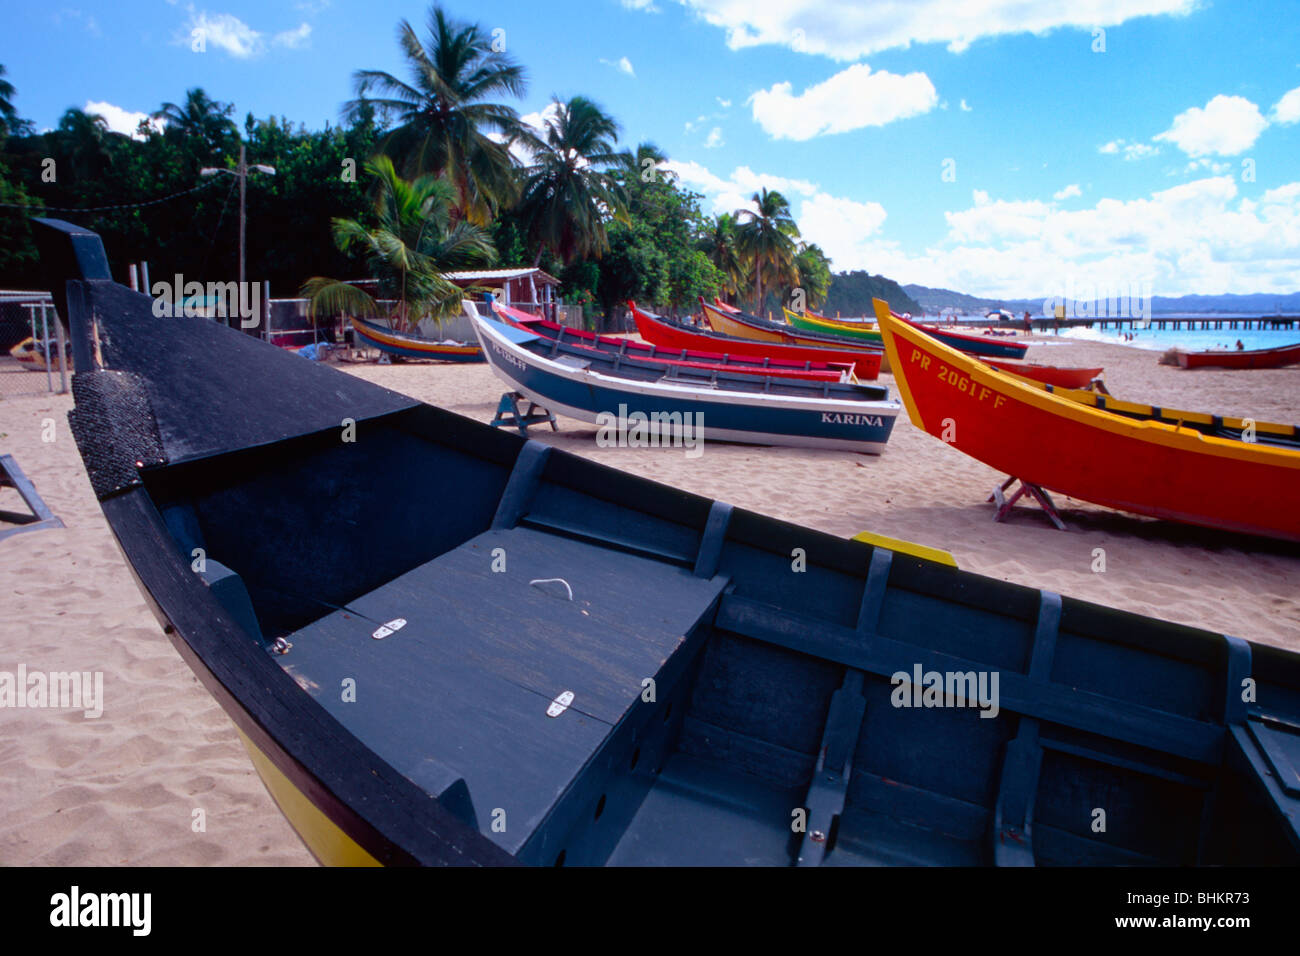 Fishing Boats Lined Up on a Beach, Aguadilla, Puerto Rico - Stock Image